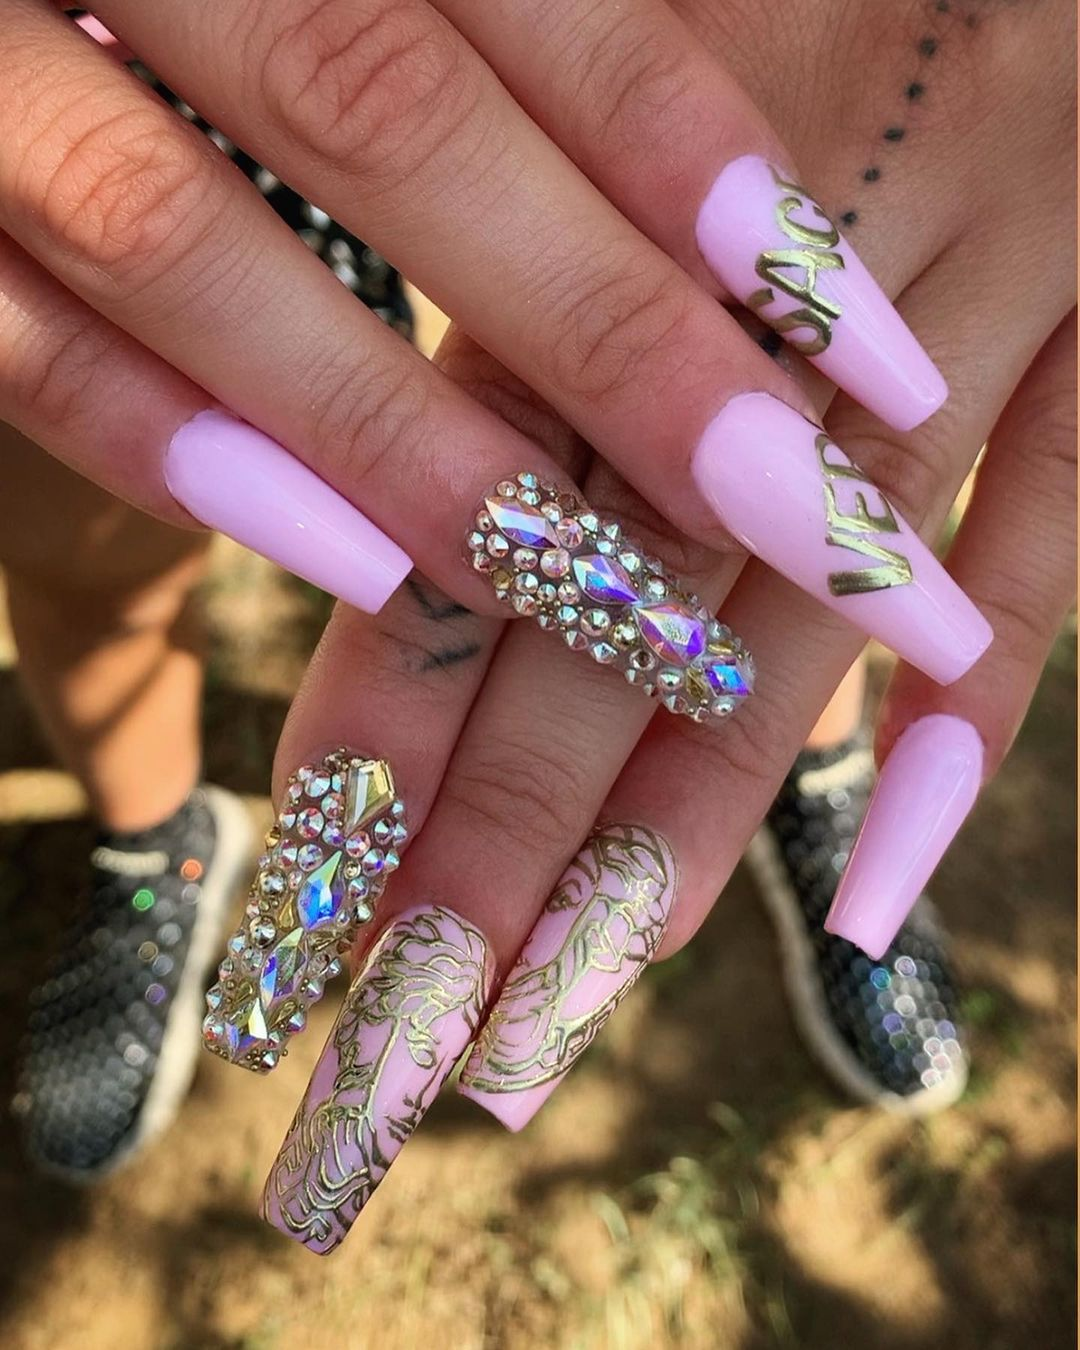 Soft pink and gold nails with rhinestones